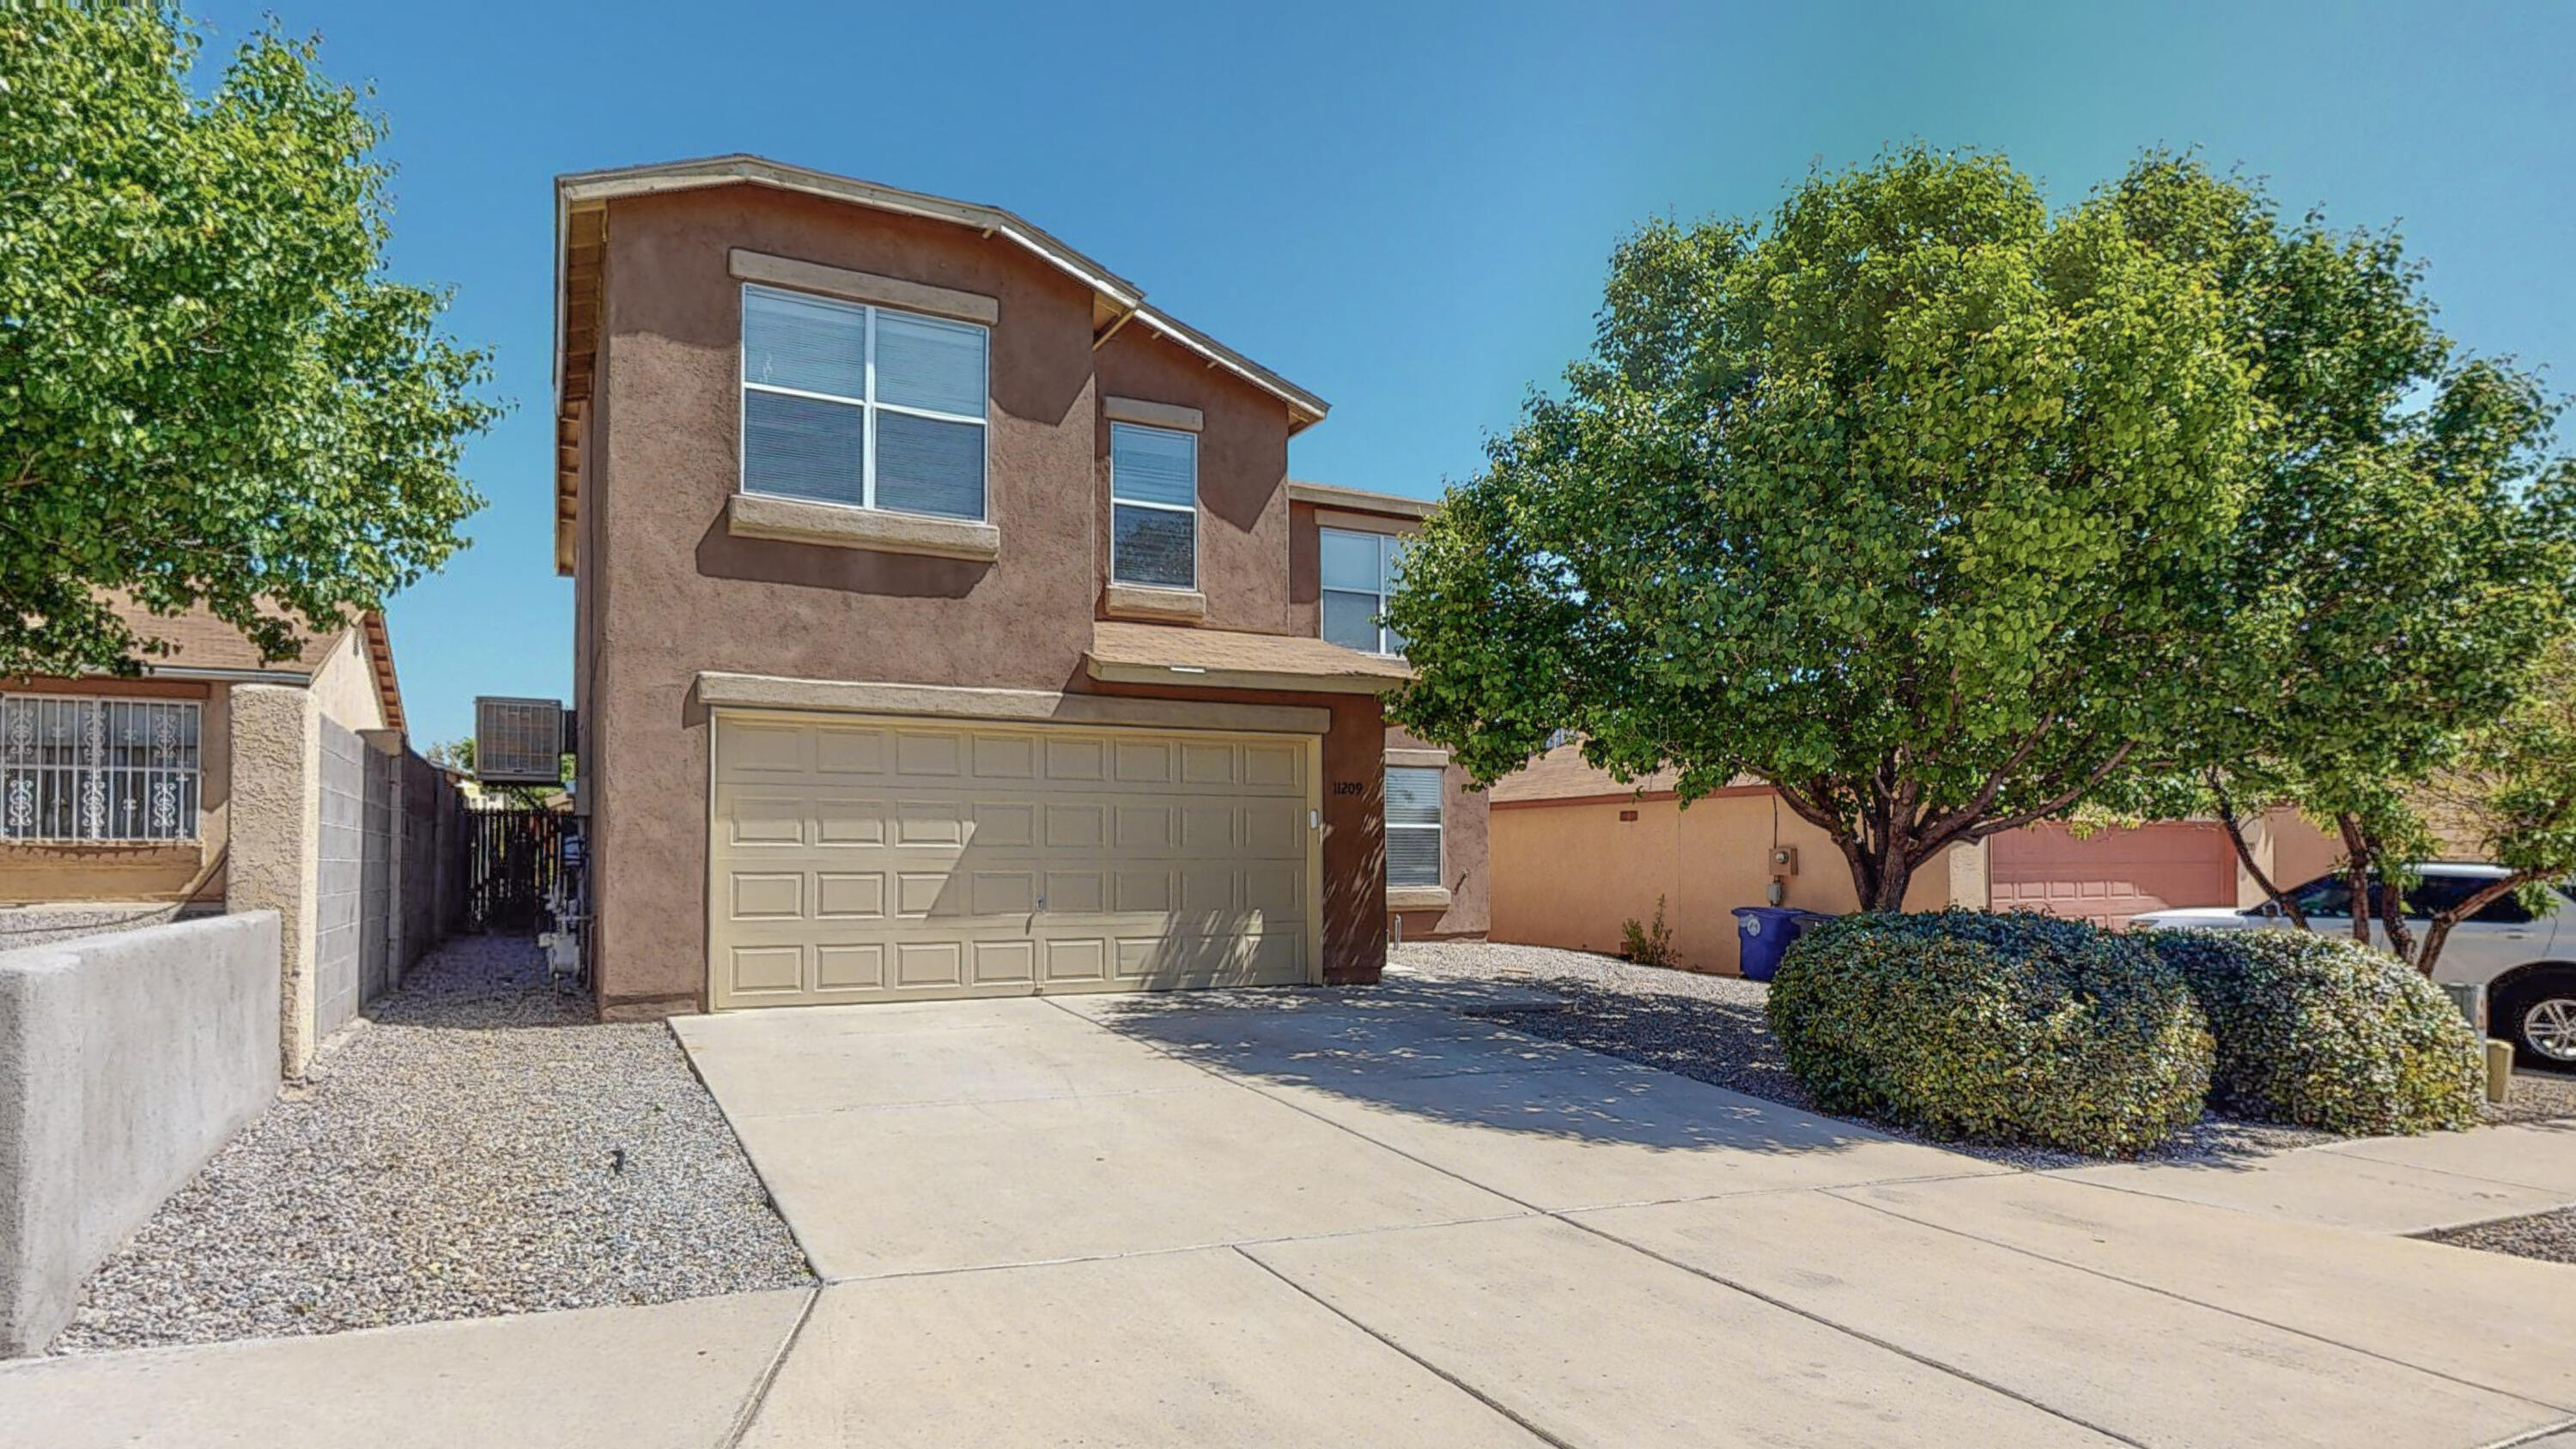 This 4 bed/2.5 bath home is located on a quiet cul de sac in the South Valley near shopping, restaurants, and schools. The open downstairs floorplan features tile in the kitchen & laminate flooring in the spacious living area. The kitchen appliances along with the washer/dryer convey. This home has a great sized MBR that has a walk-in closet, double sinks, a garden tub, and separate shower. Fresh new paint, ceiling fans, newer: stucco, evaporative cooler, and water heater. The finished two car garage includes storage cabinets and a work bench. The landscaped back yard includes a 10x10 storage shed, large, covered patio (with new metal roof) and is great space for entertaining. Do not miss this opportunity to make this house your HOME! Pre-Listing Inspection has been completed.